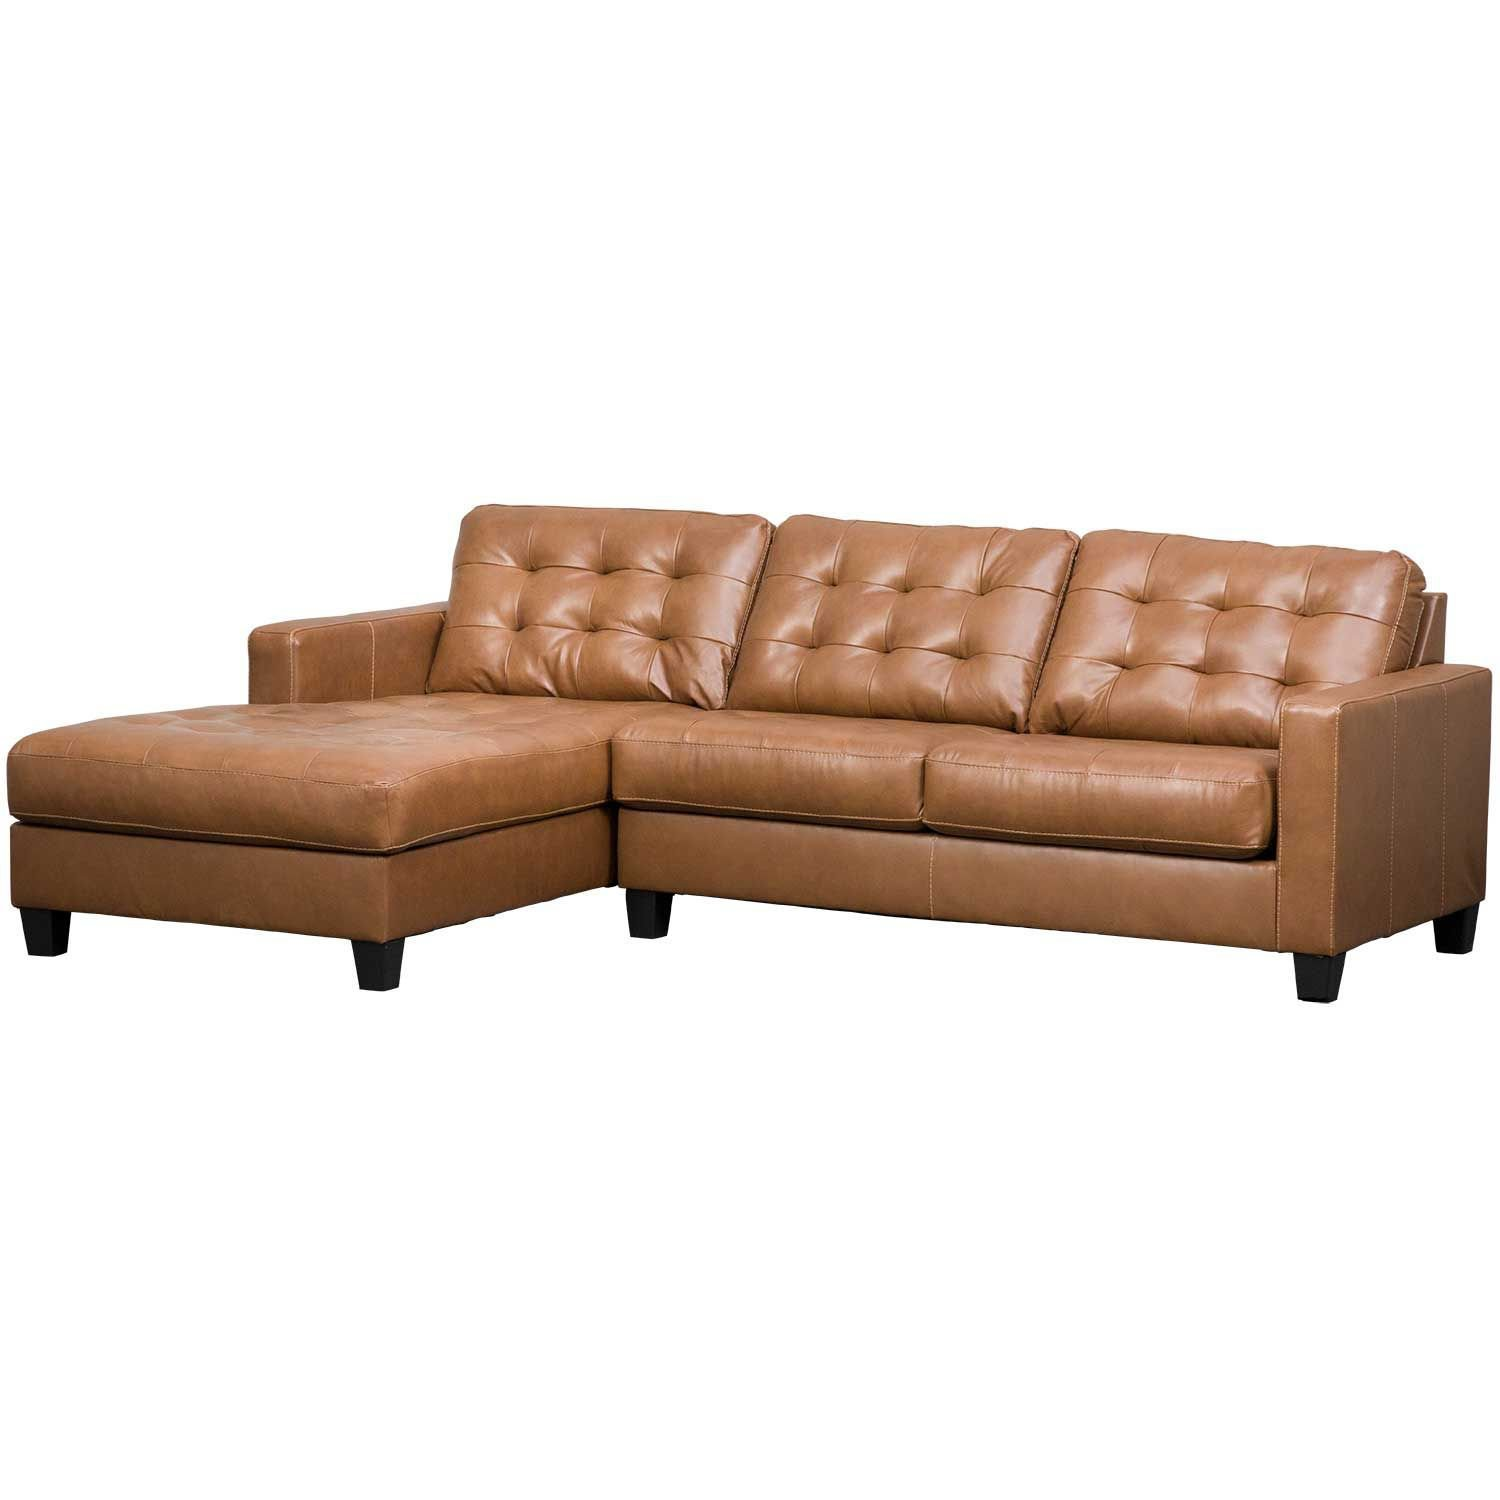 6 Pc Nicole Espresso Bonded Leather Sectional Sofa With ...